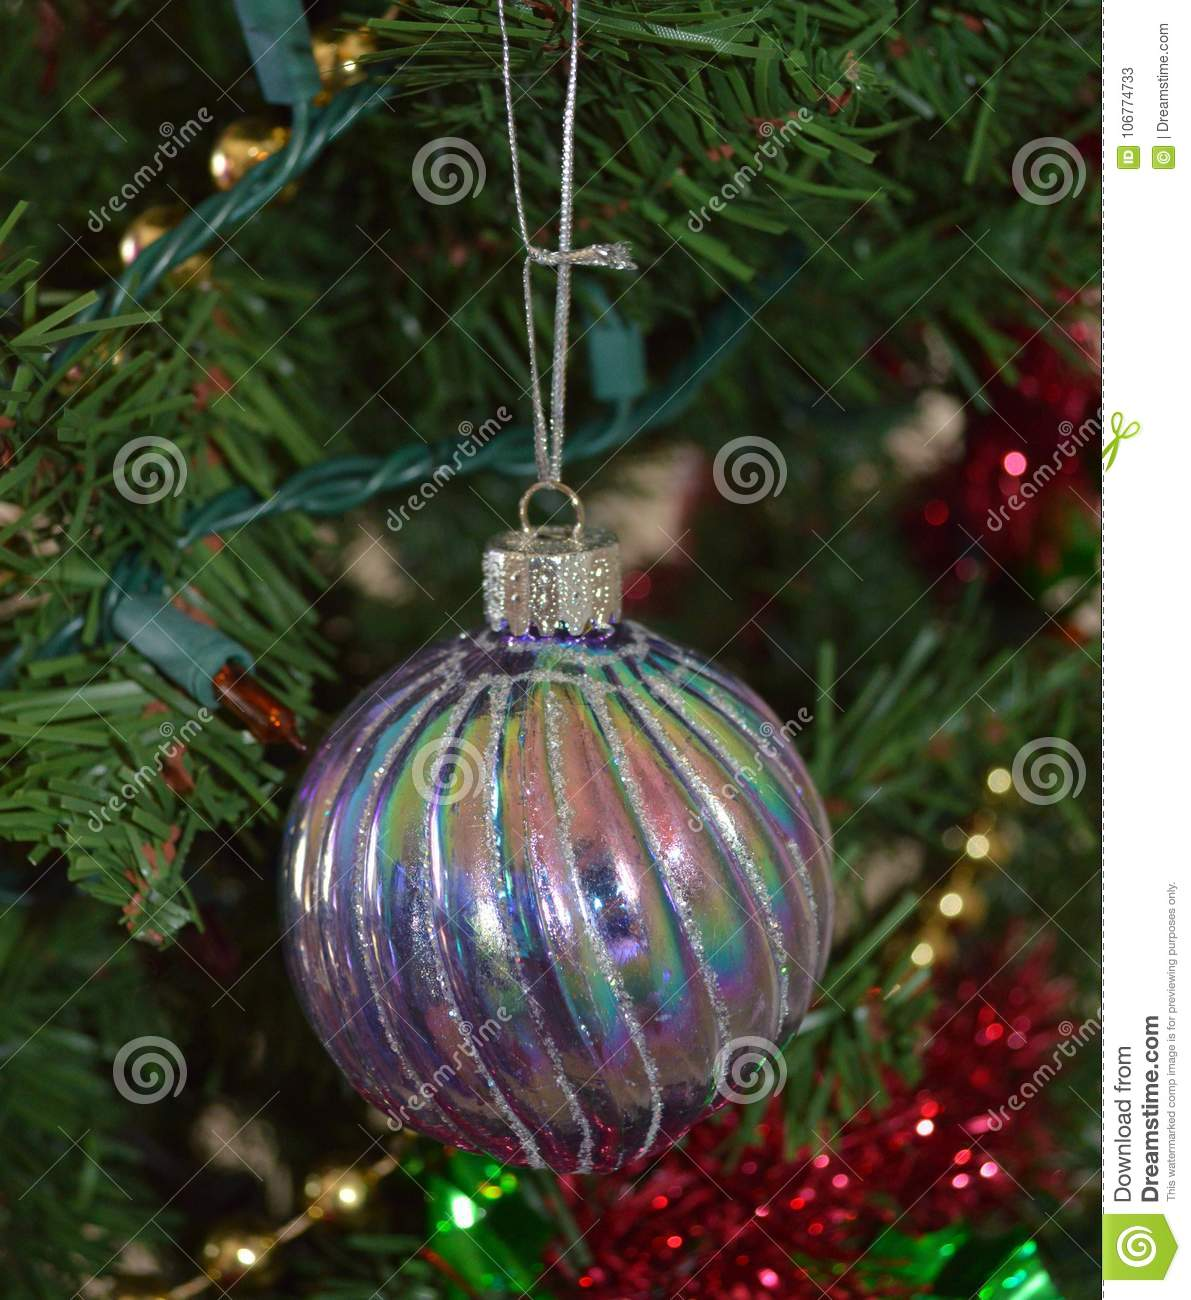 a close up photo of a silver and rainbow glass christmas bulb ornament on a green decorated christmas tree - Glass Christmas Bulbs For Decorating